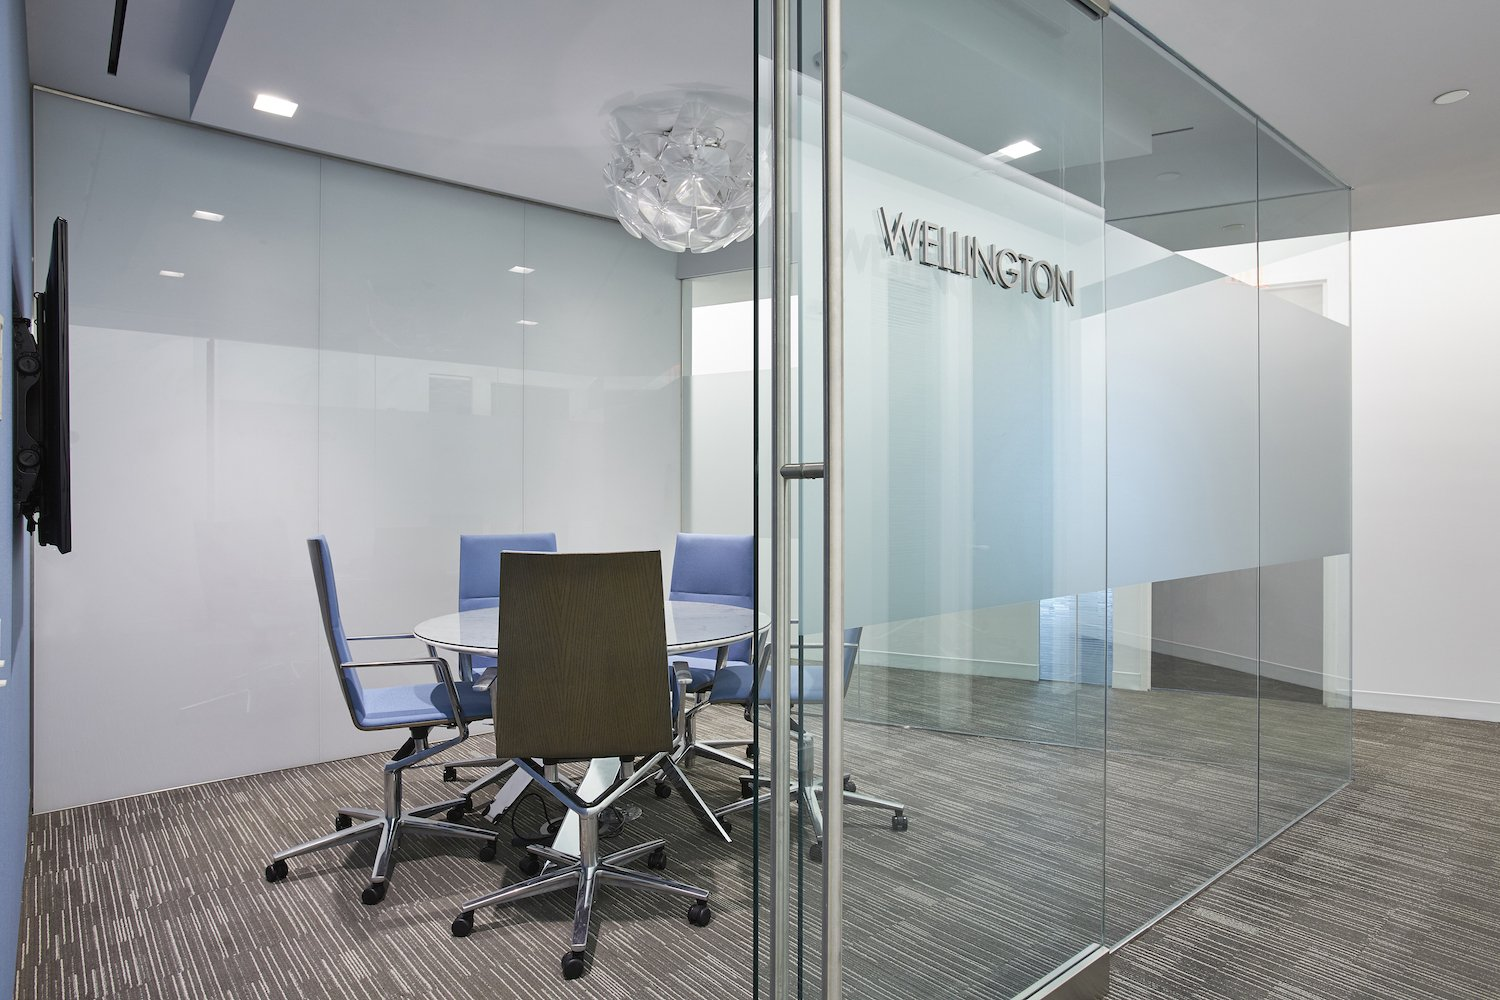 Wellington Meeting Room with Glass walls